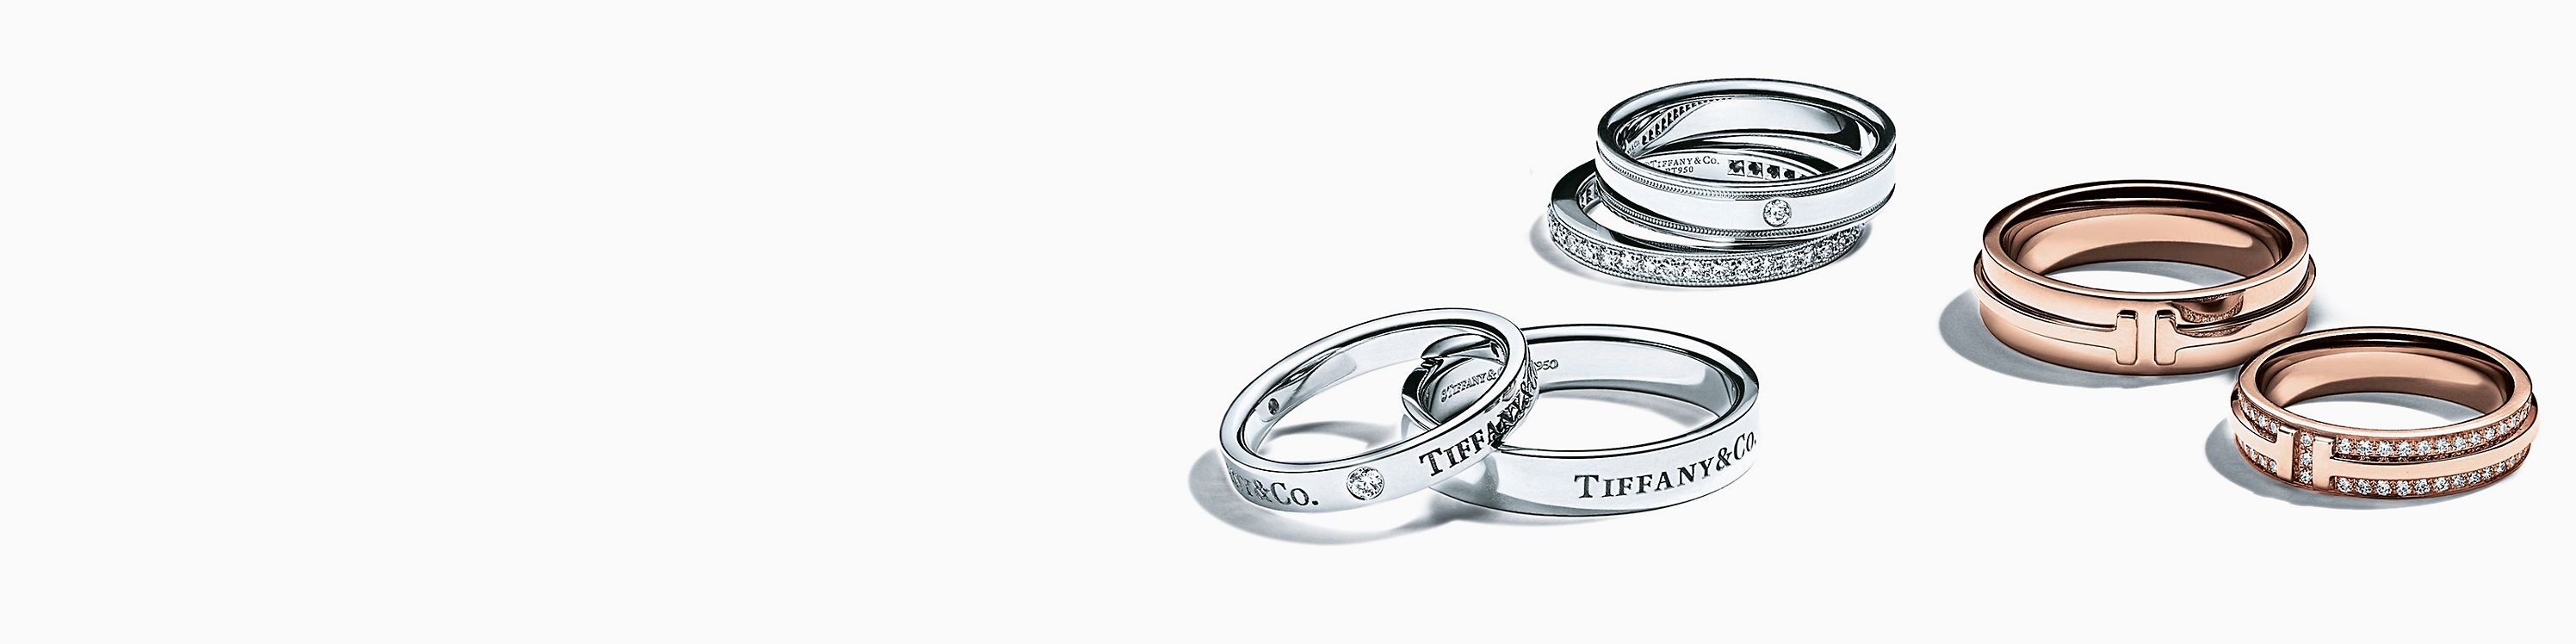 0b3fc4876 Shop Tiffany & Co. Wedding Band Sets